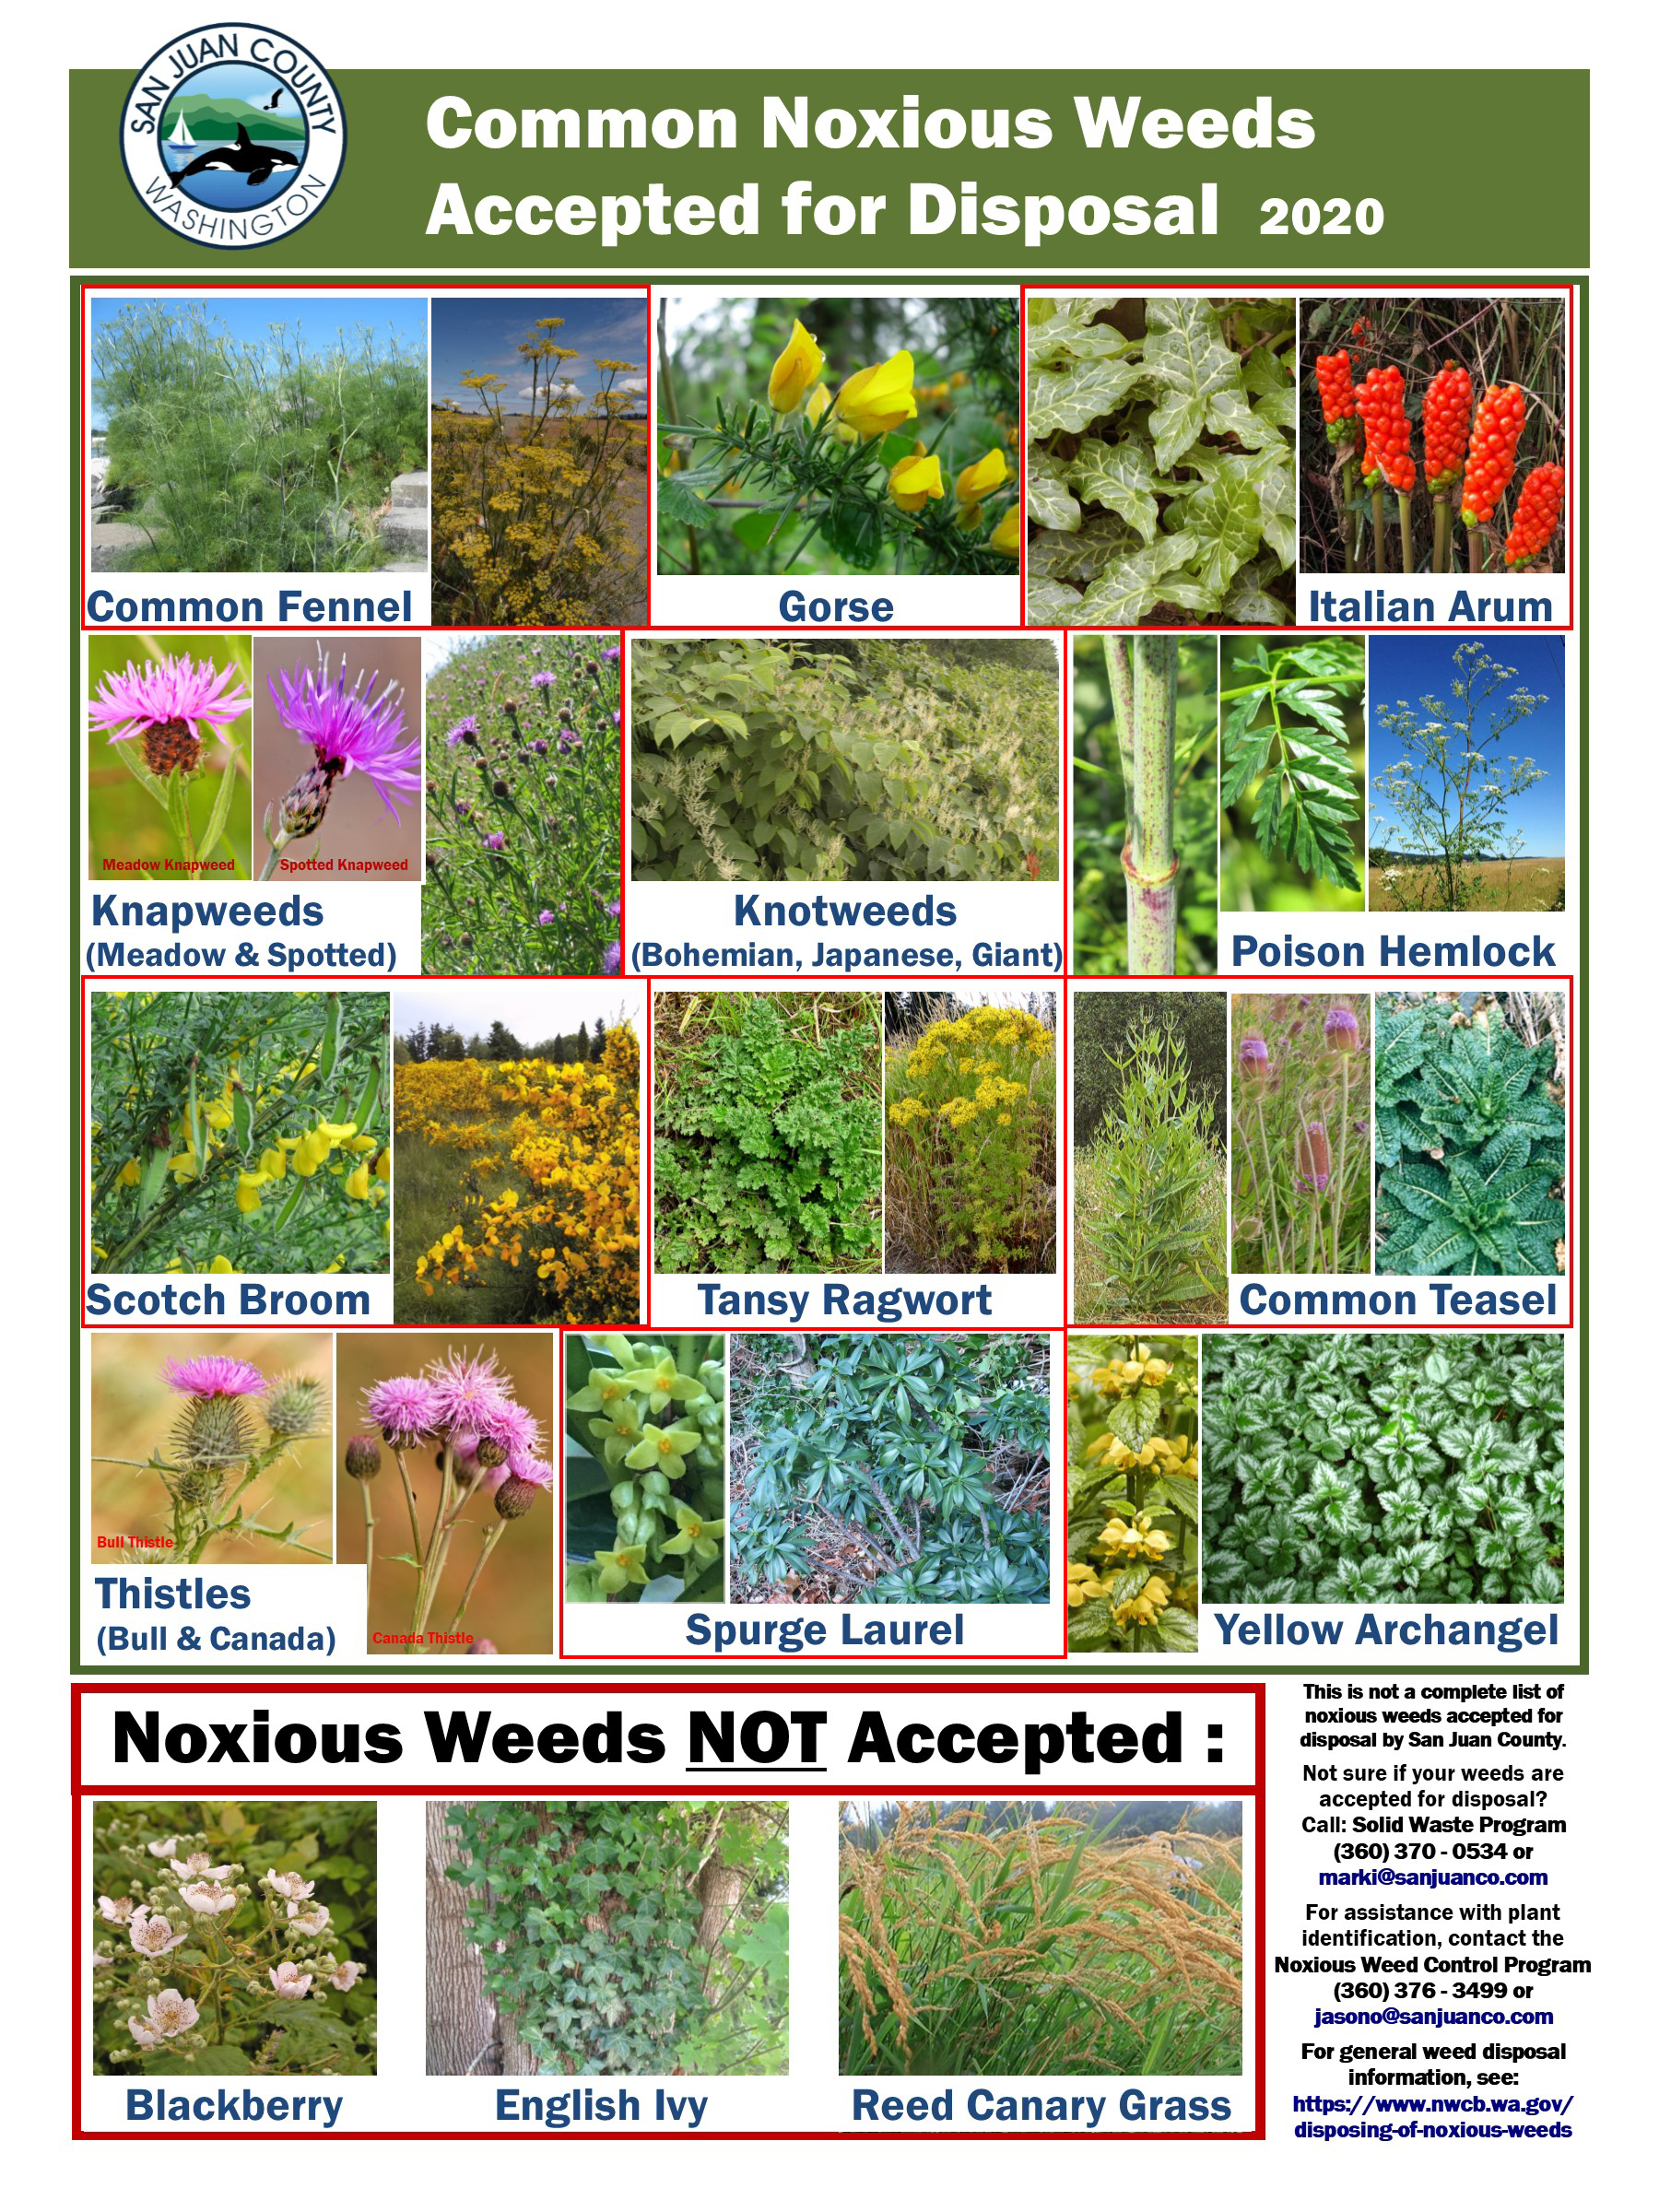 Noxious-Weed-Disposal-Poster-2020